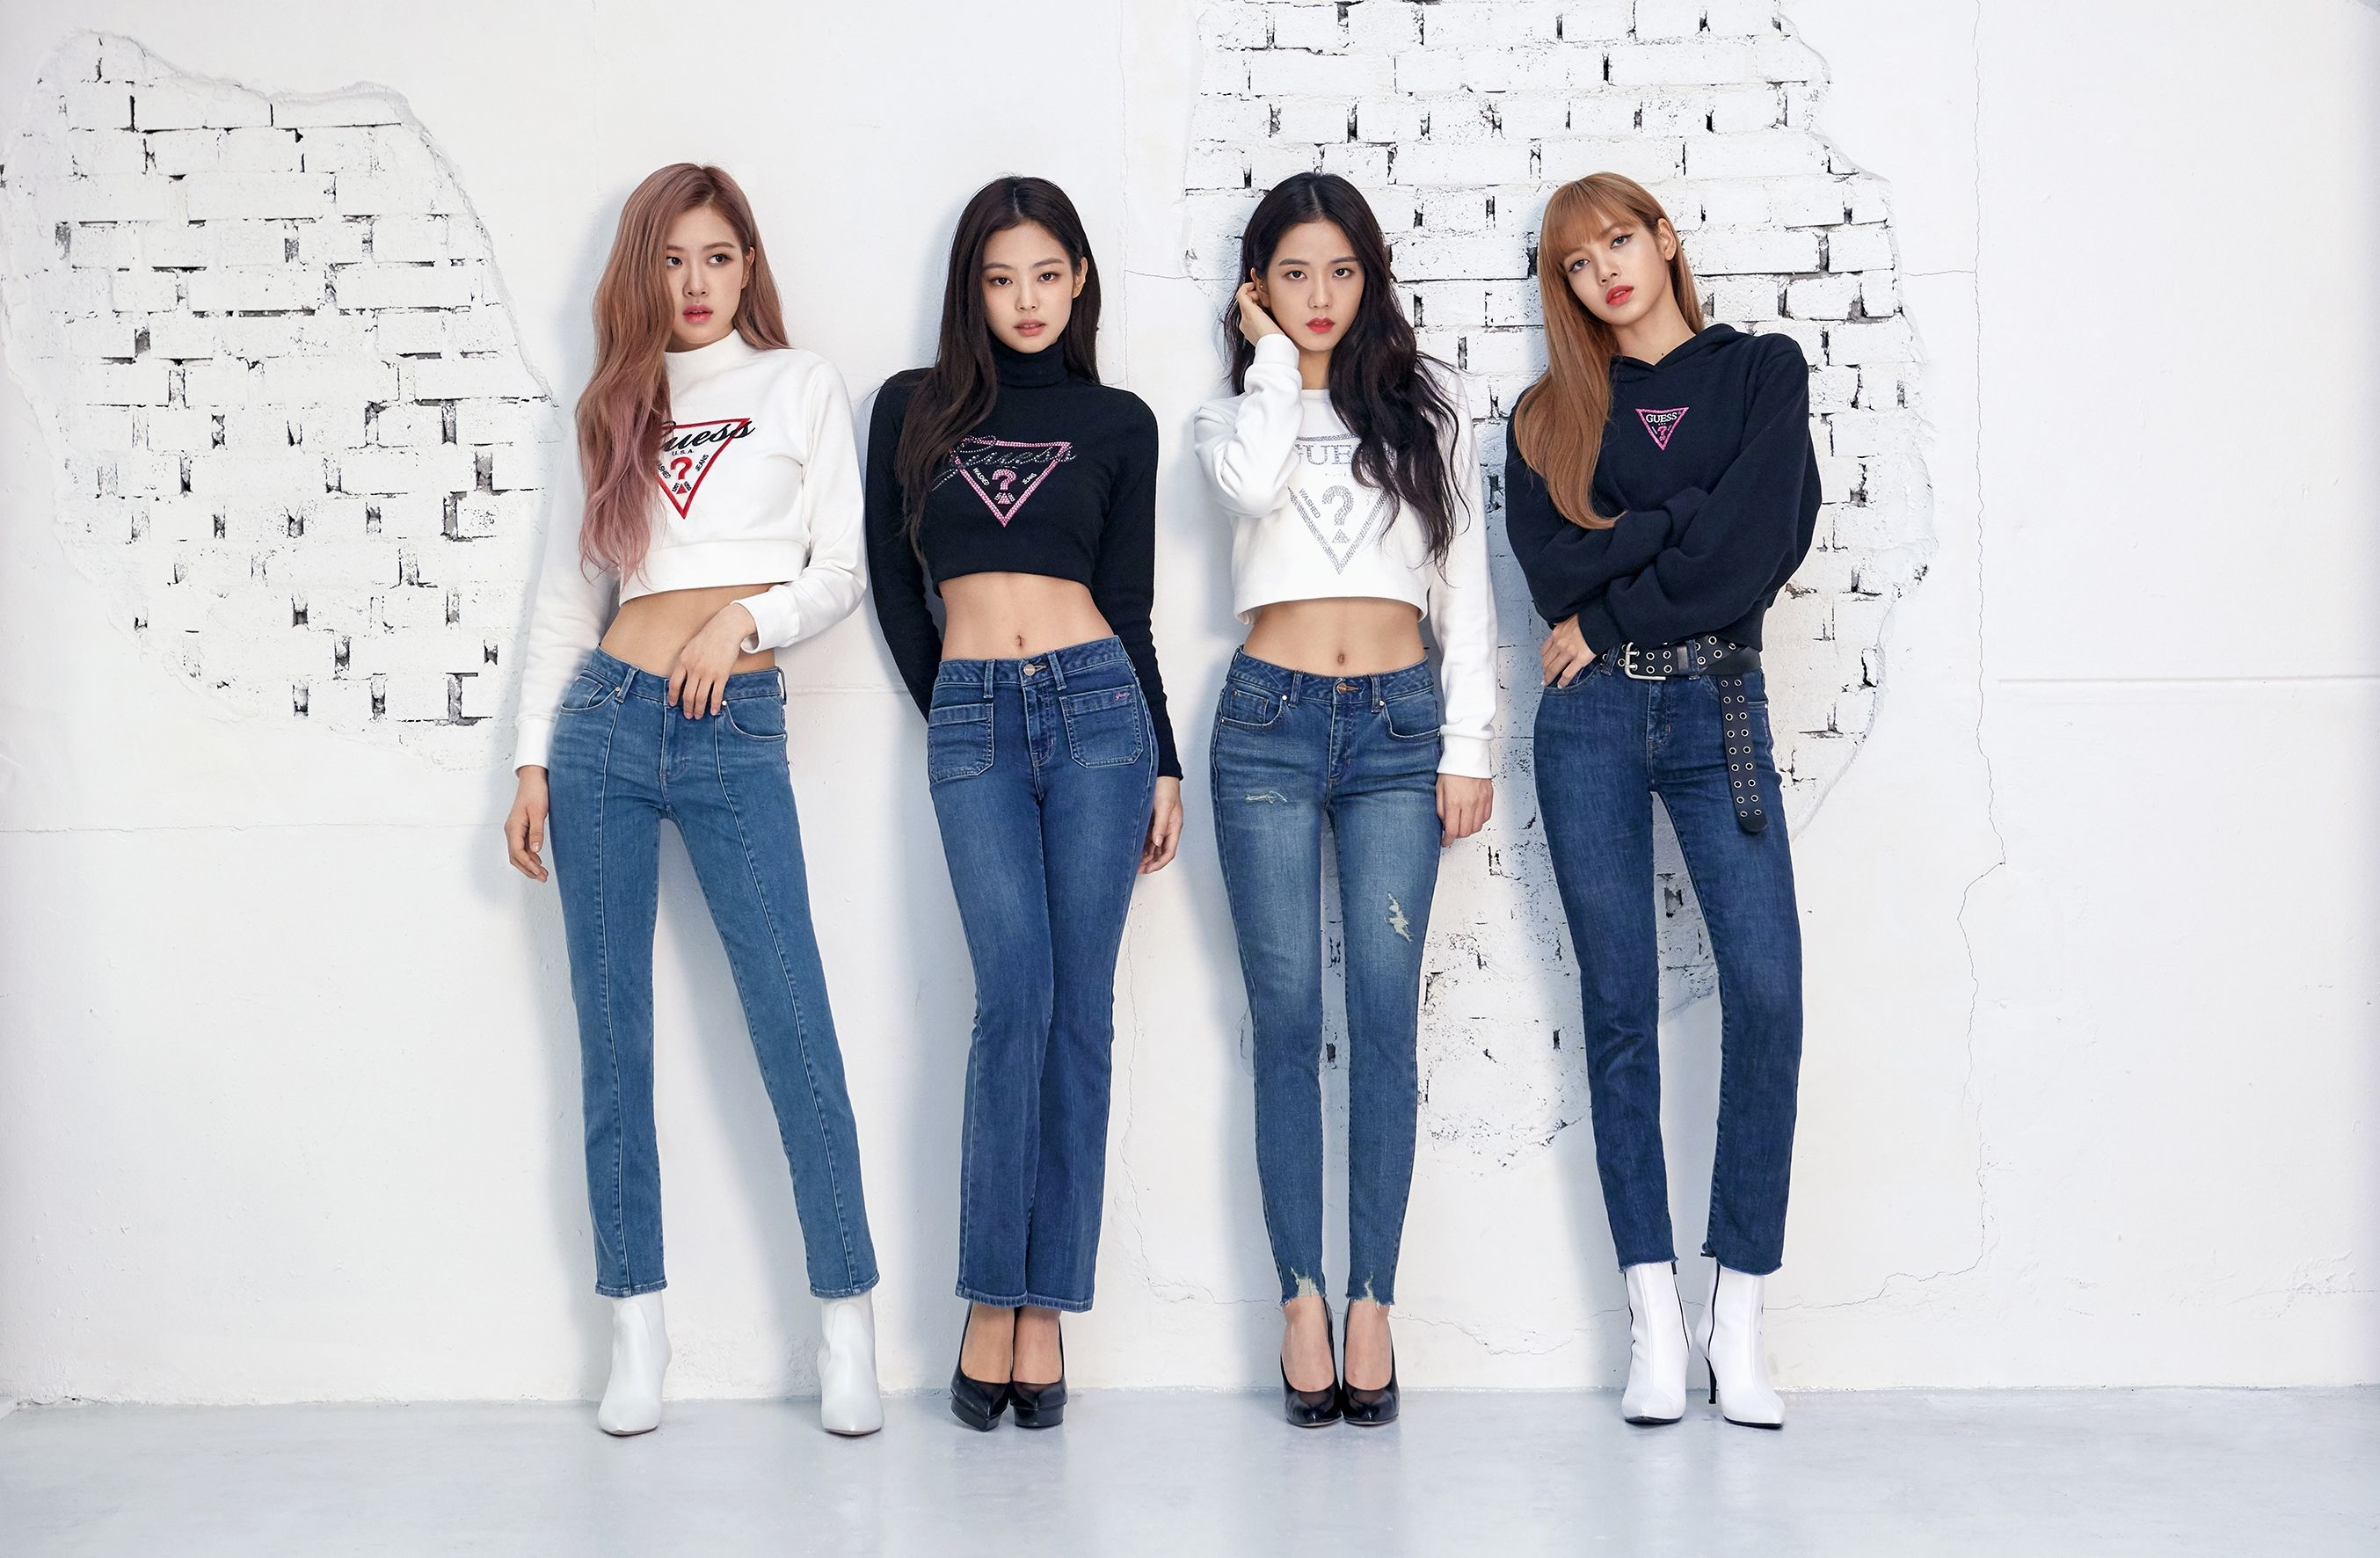 Blackpink for Guess FW 2018